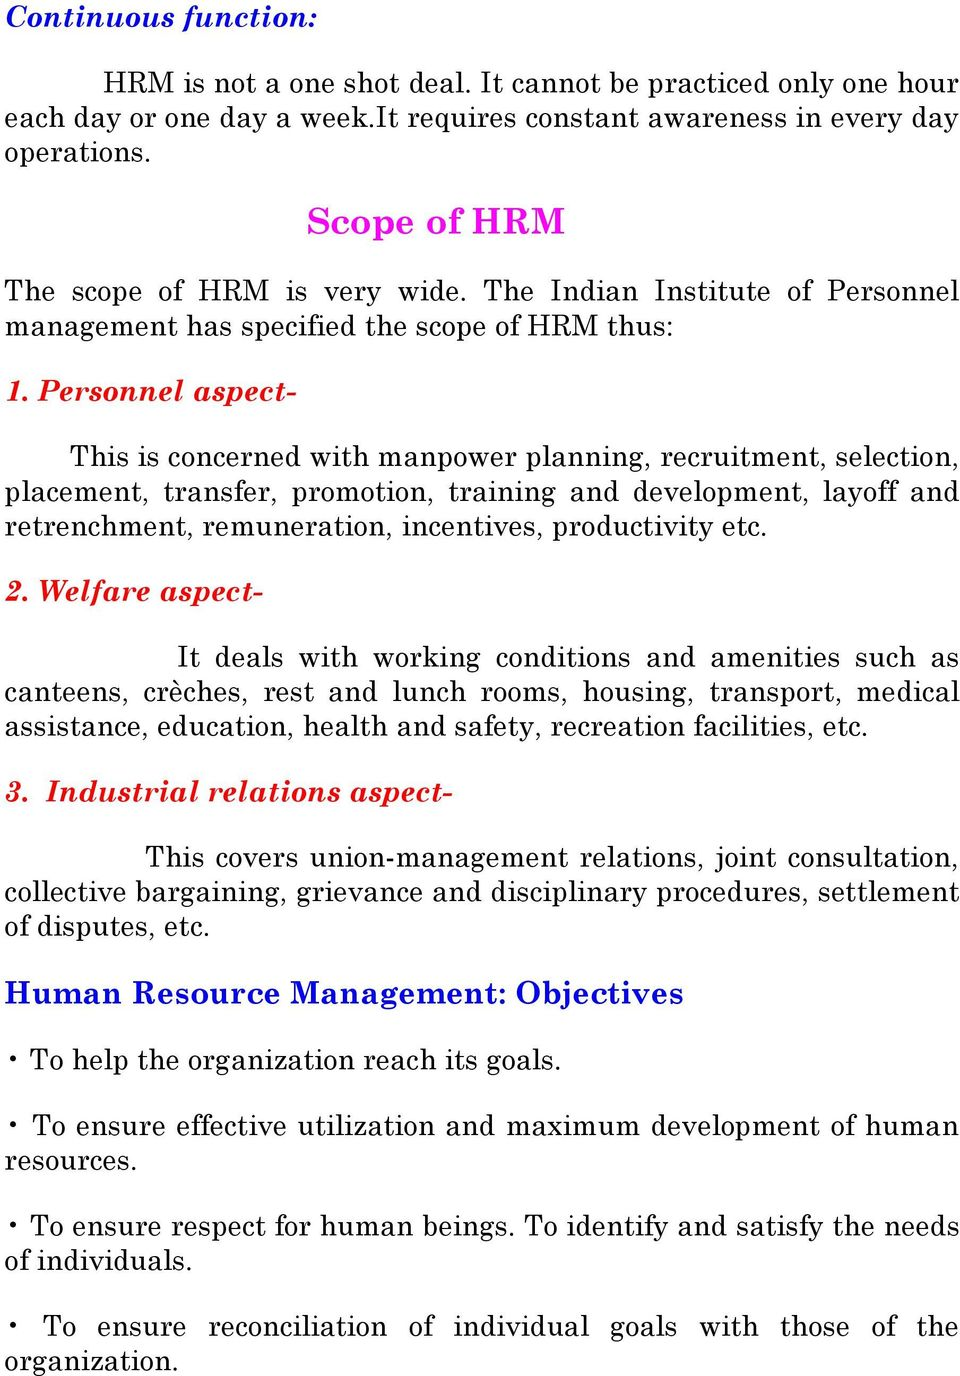 Personnel aspect- This is concerned with manpower planning, recruitment, selection, placement, transfer, promotion, training and development, layoff and retrenchment, remuneration, incentives,